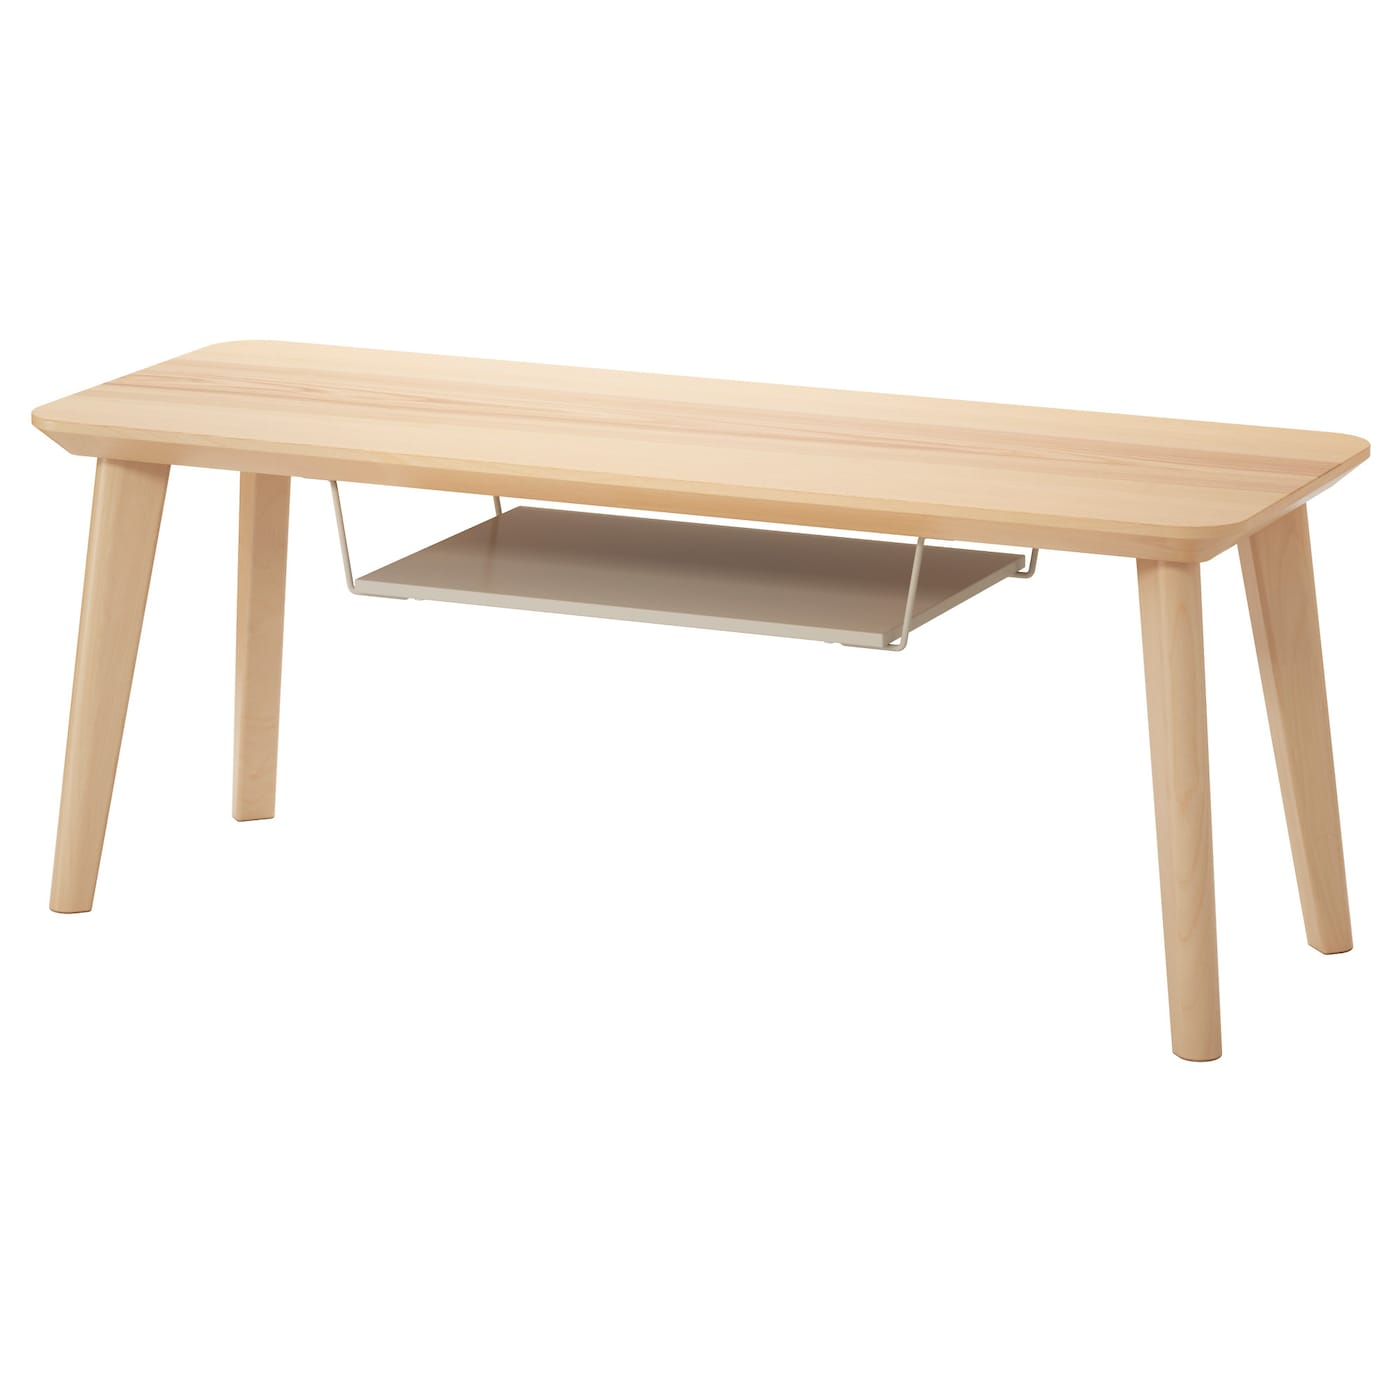 Lisabo tv bench ash veneer 114 x 40 x 45 cm ikea - Ikea table tv ...